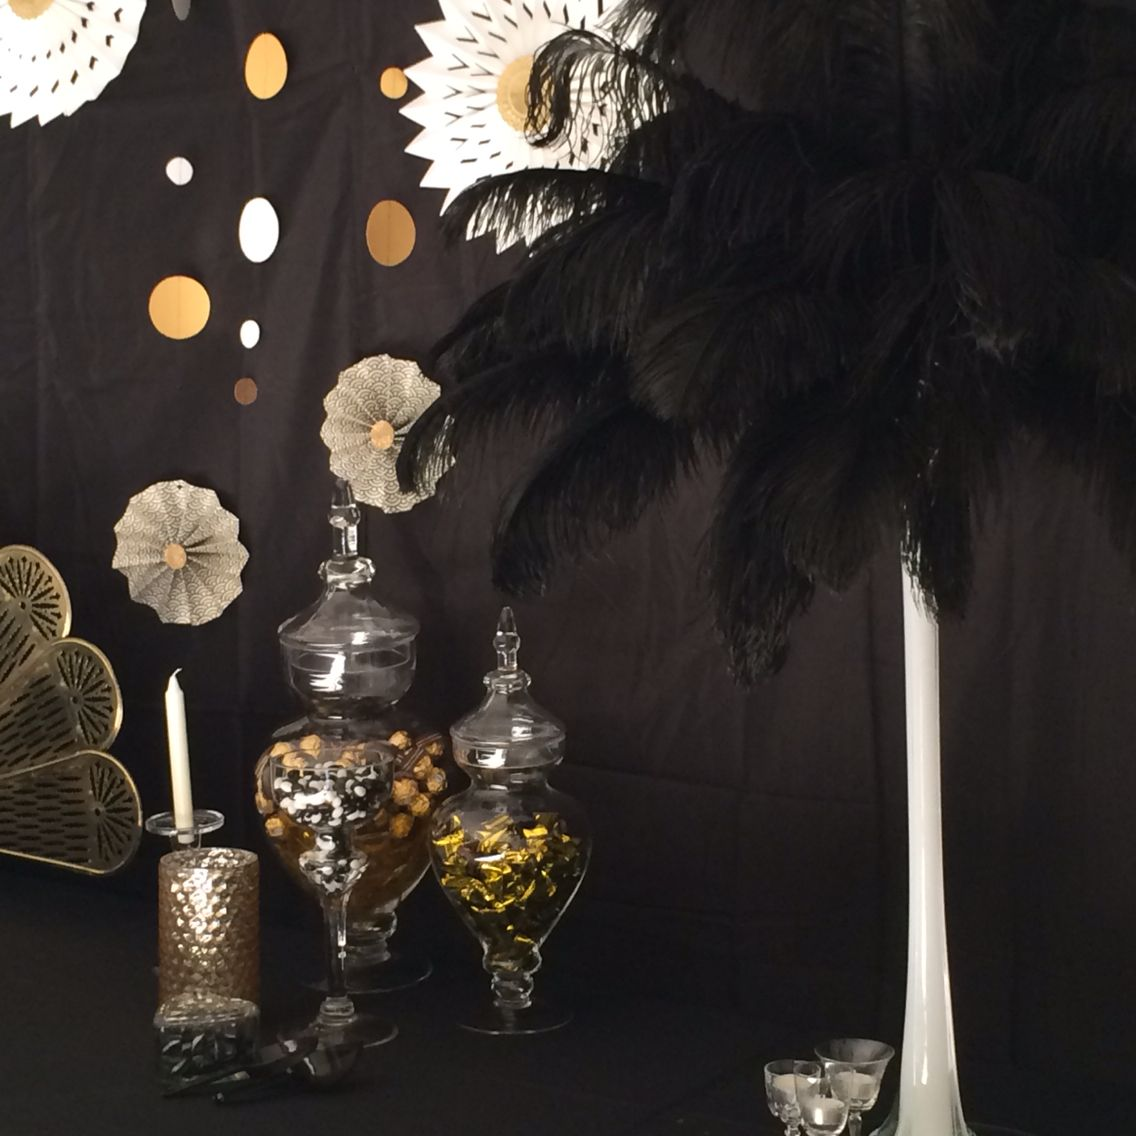 Ostrich feather vases perfect for gatsby parties gatsby ostrich feather vases perfect for gatsby parties reviewsmspy